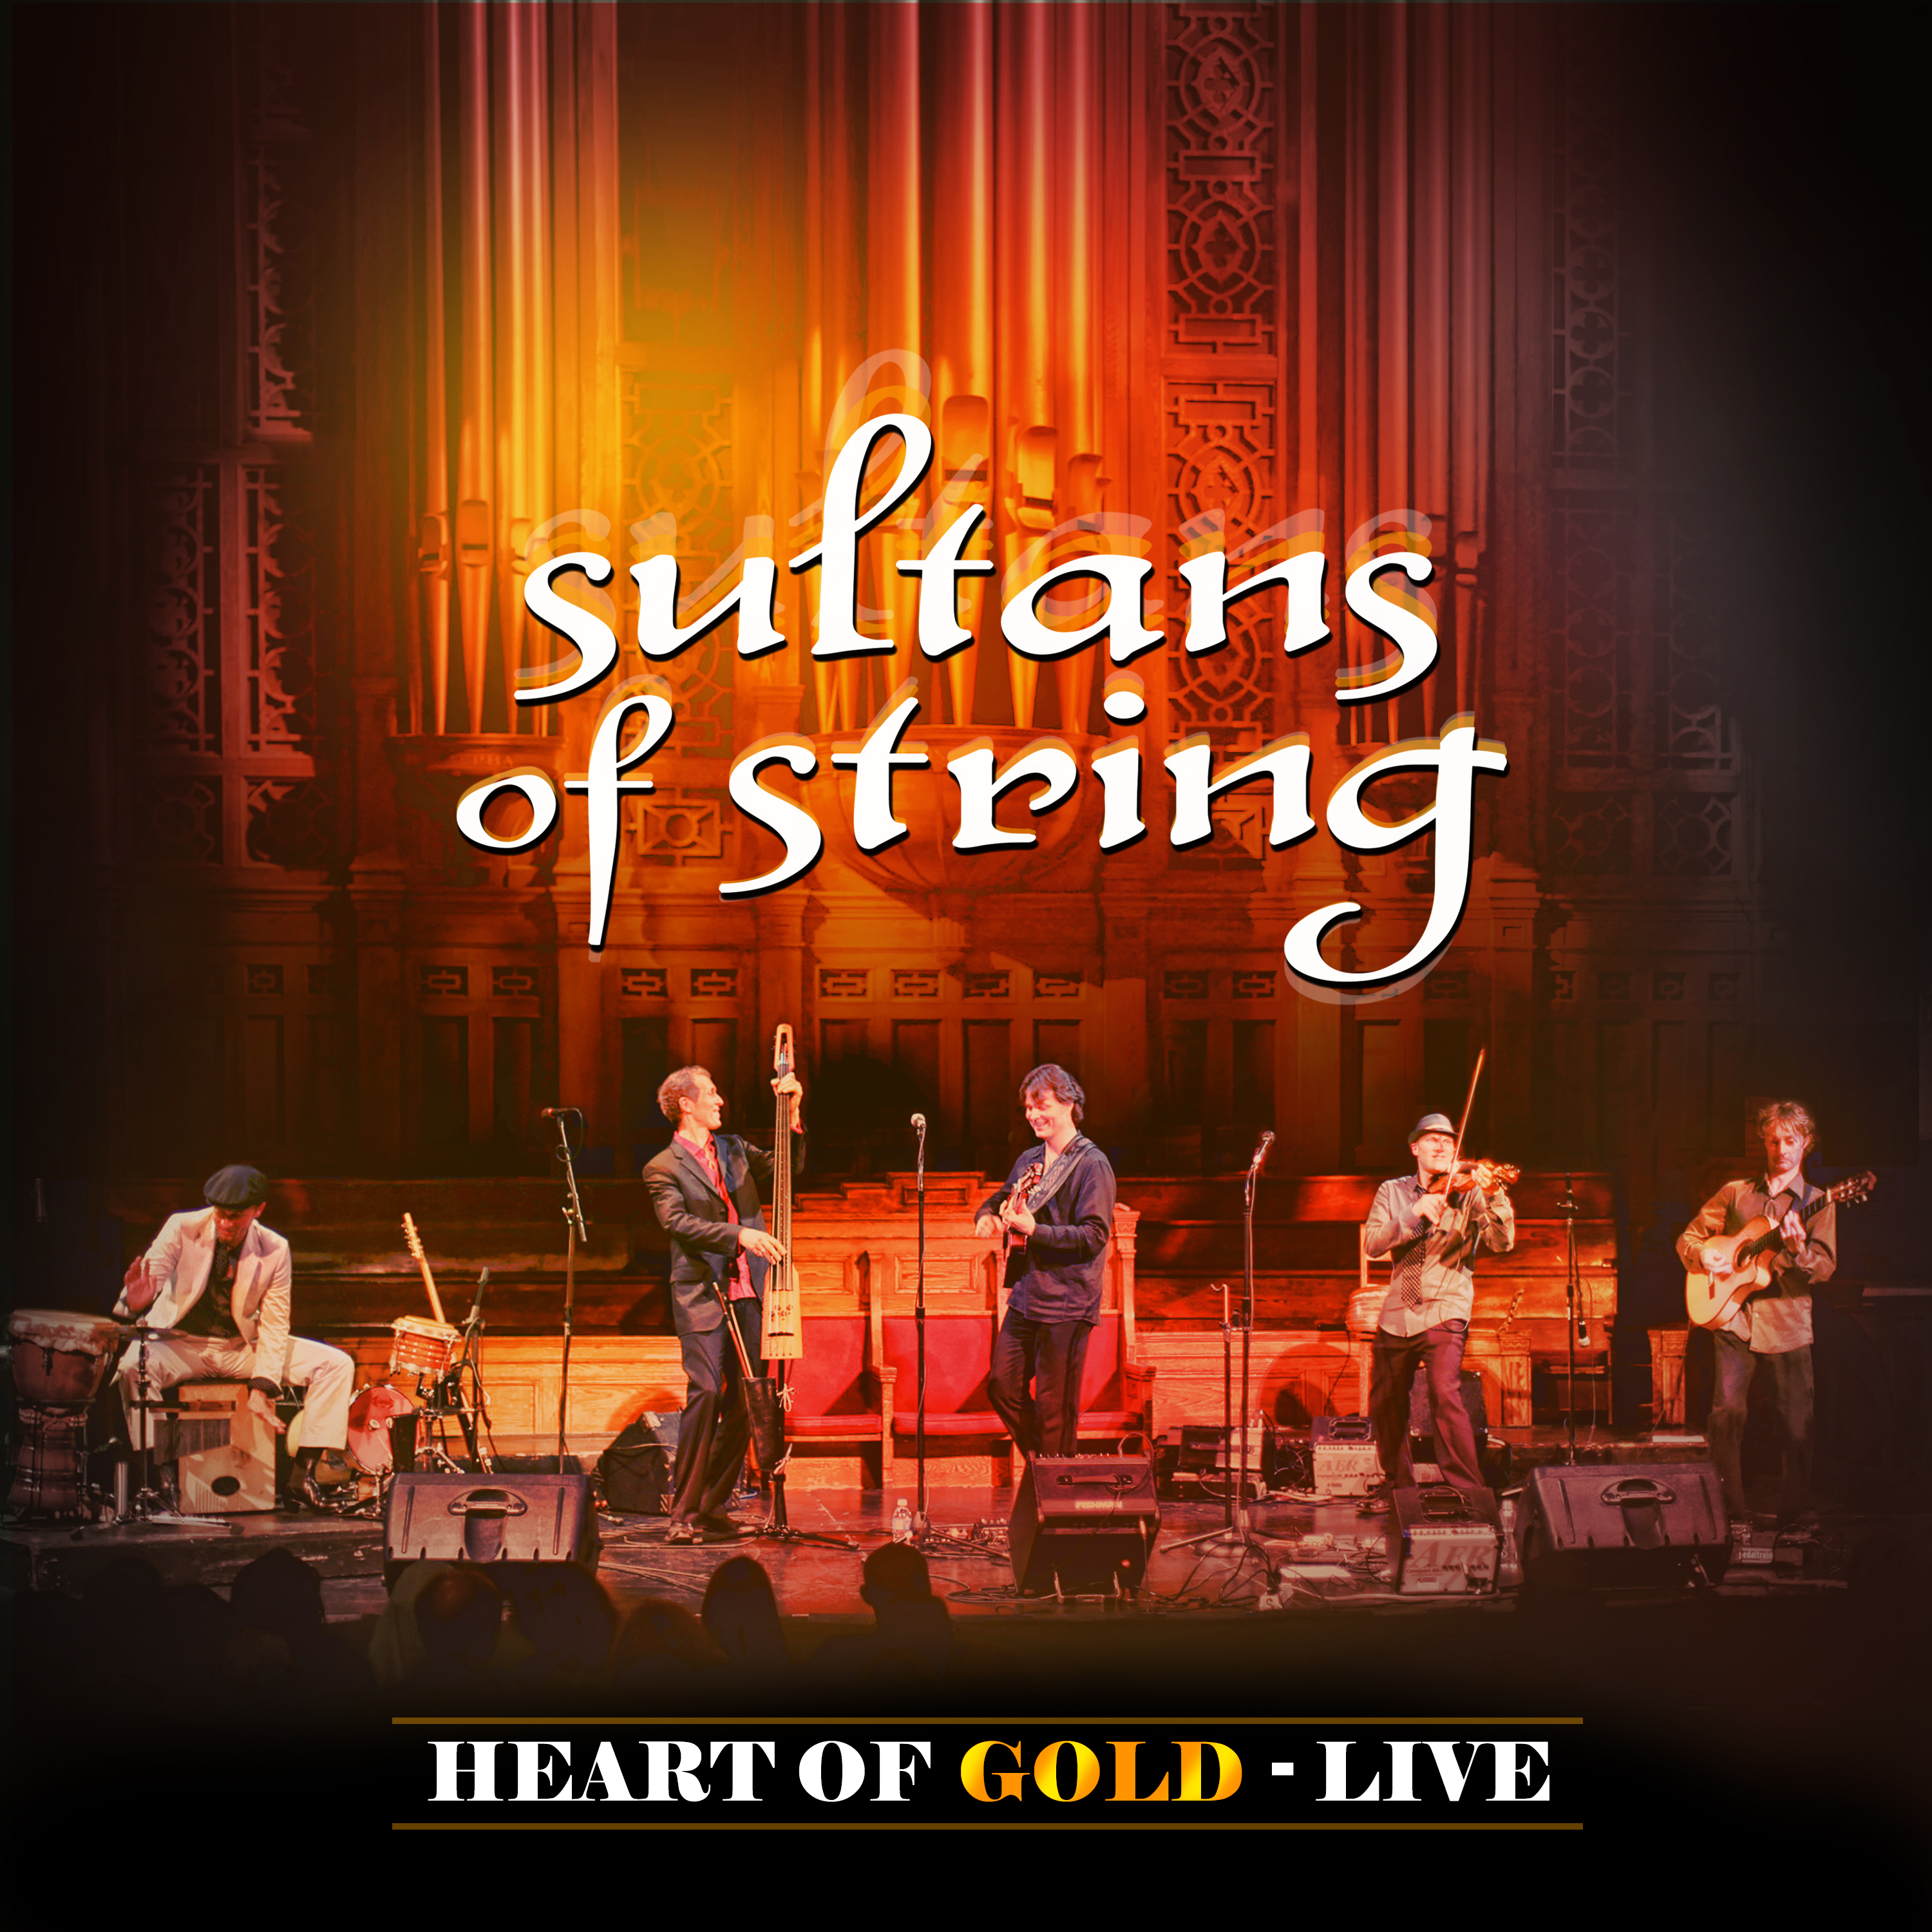 Sultans of String Heart of Gold